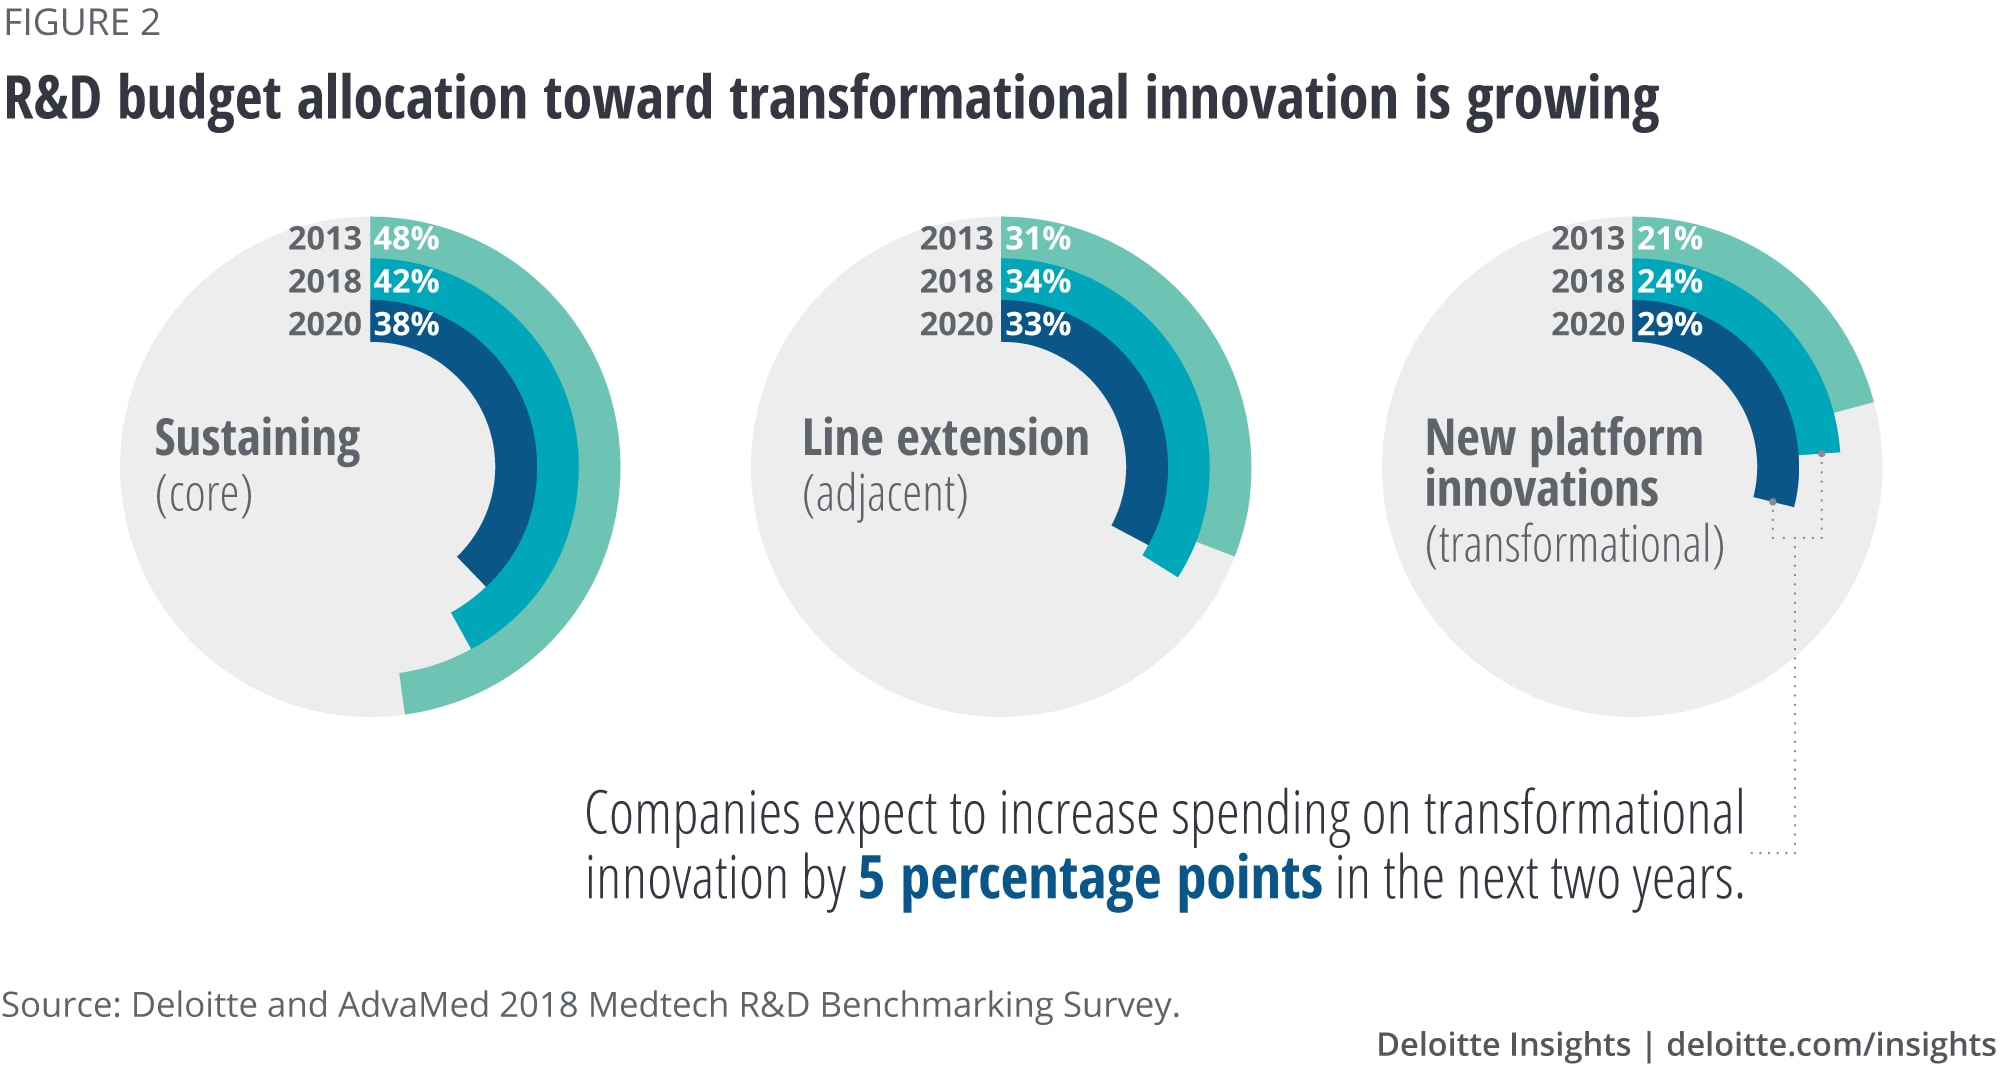 R&D budget allocation toward transformational innovation is growing